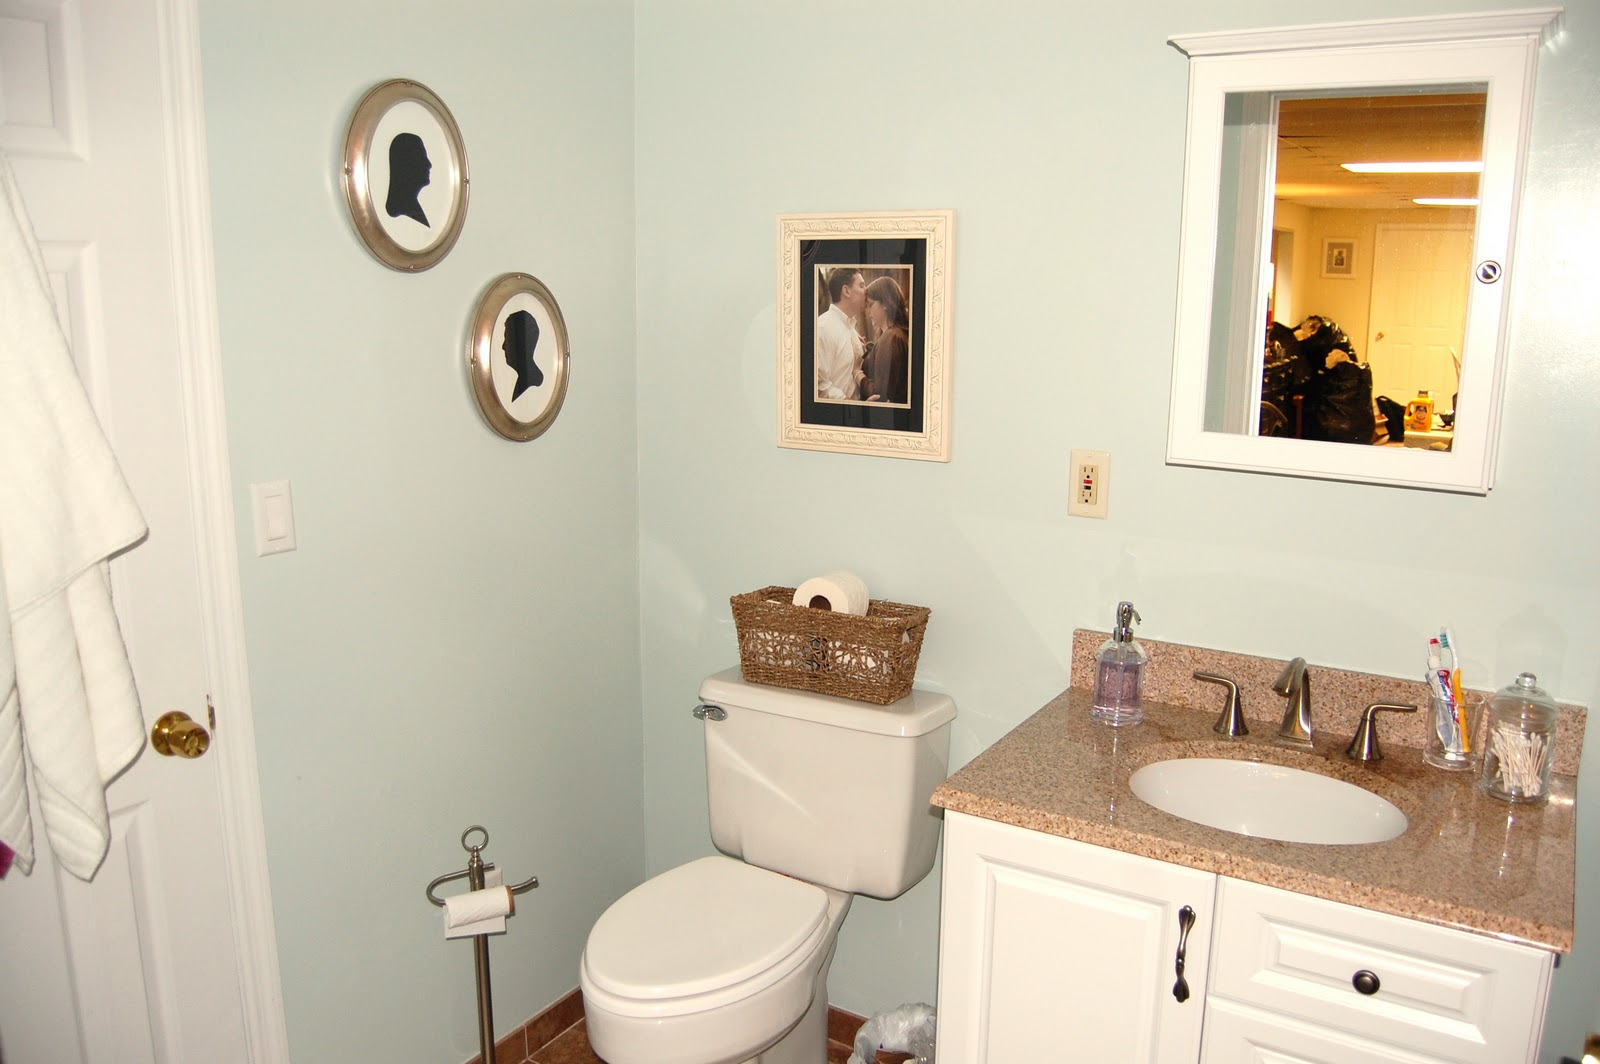 Tips How to Decorate The Bathroom?